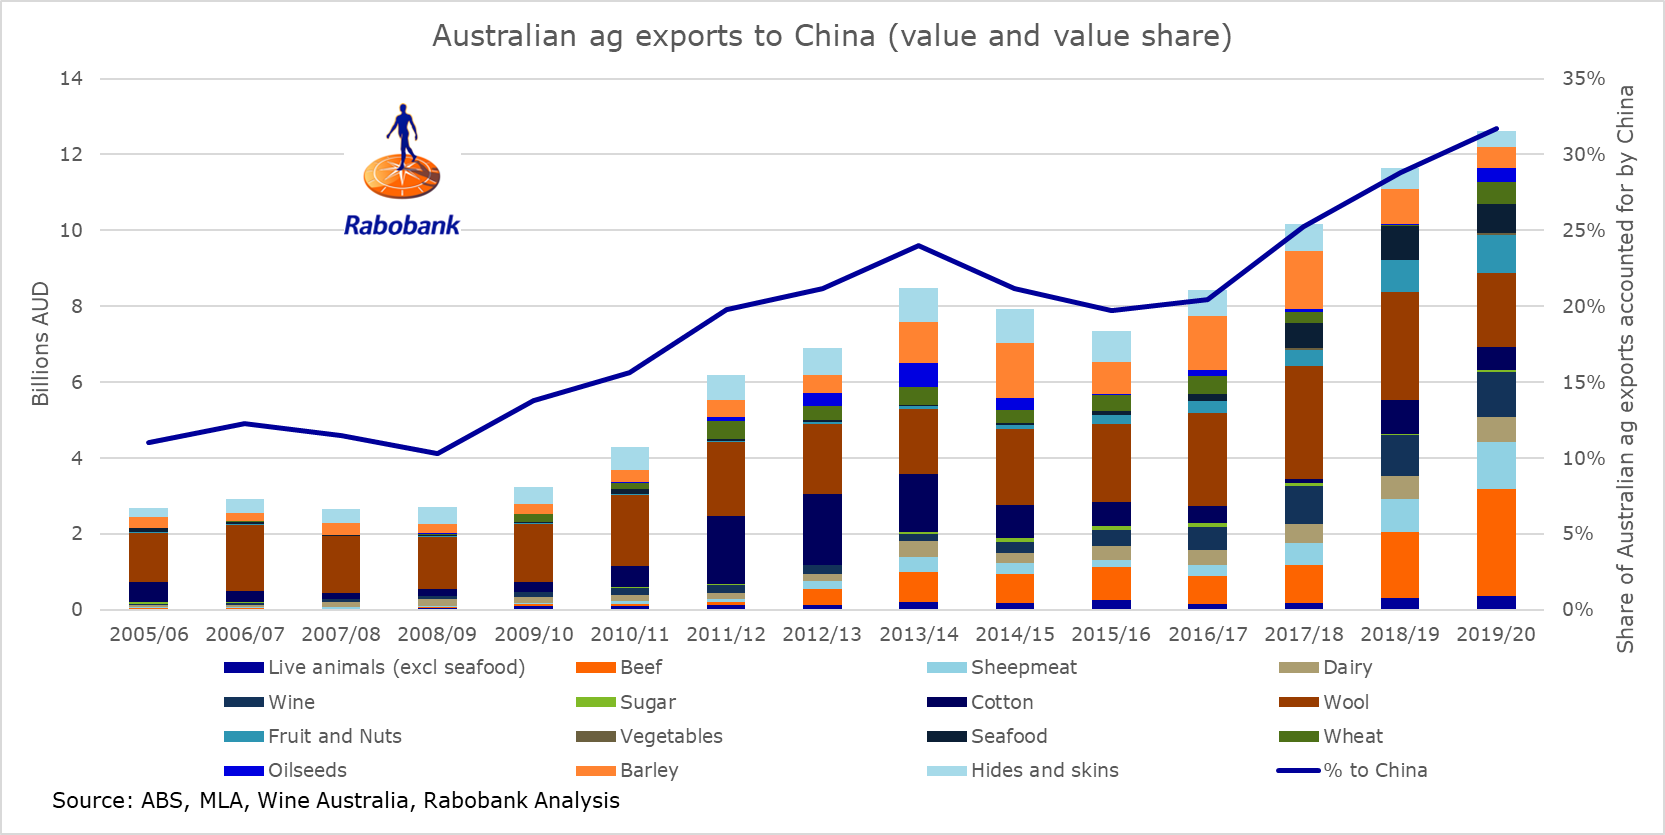 Australian ag exports to China (key commodities)